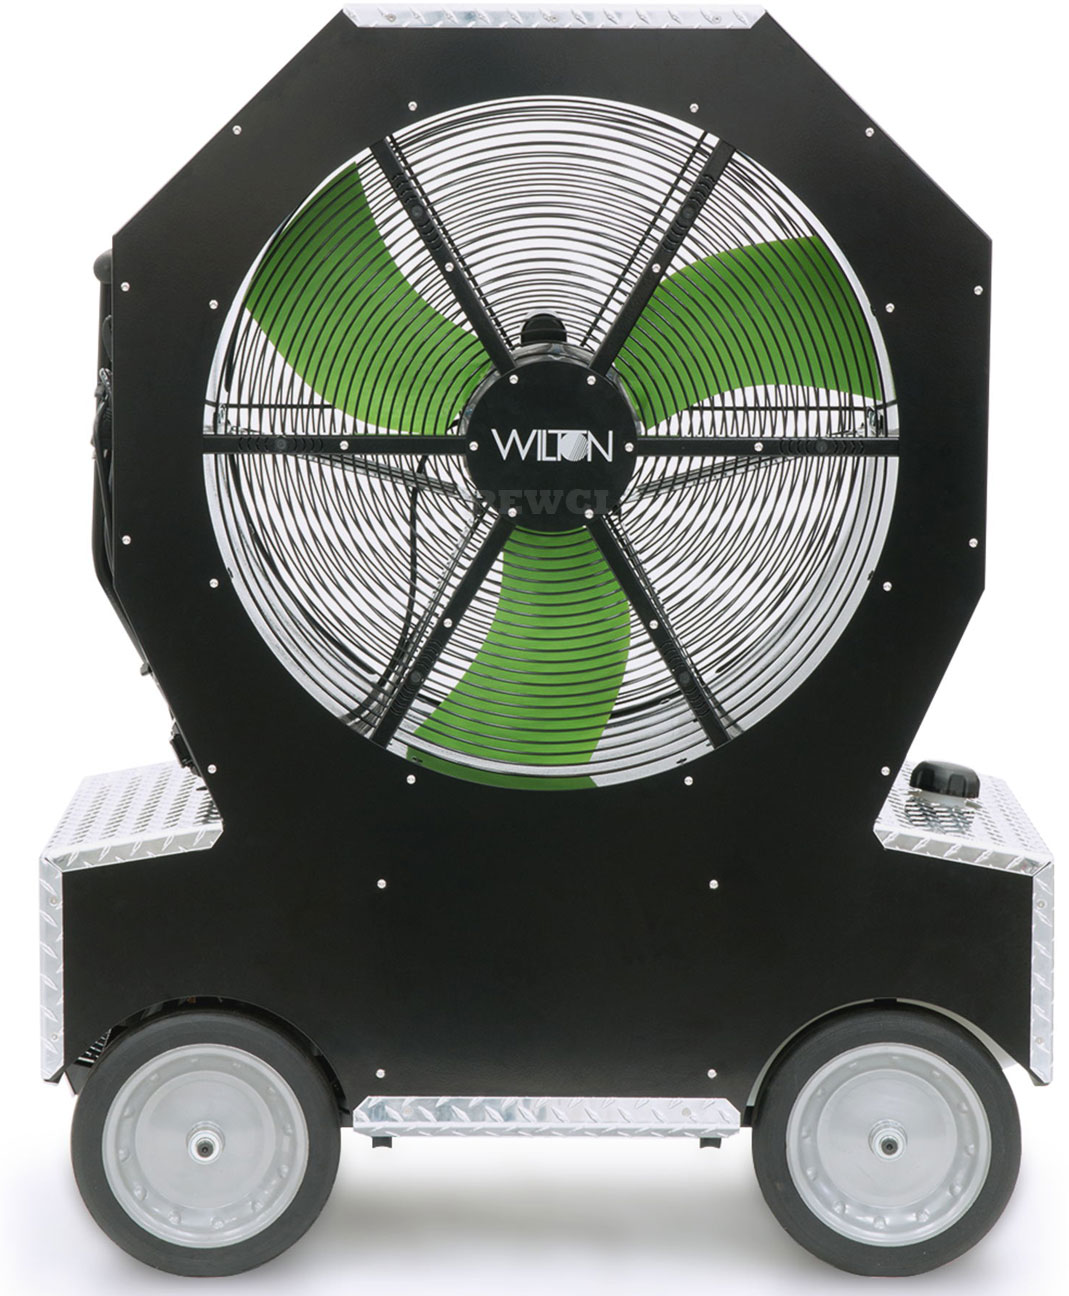 Garage Fan Attic Cooler Wilton Cold Front 3037 Atomized Cooling Fan